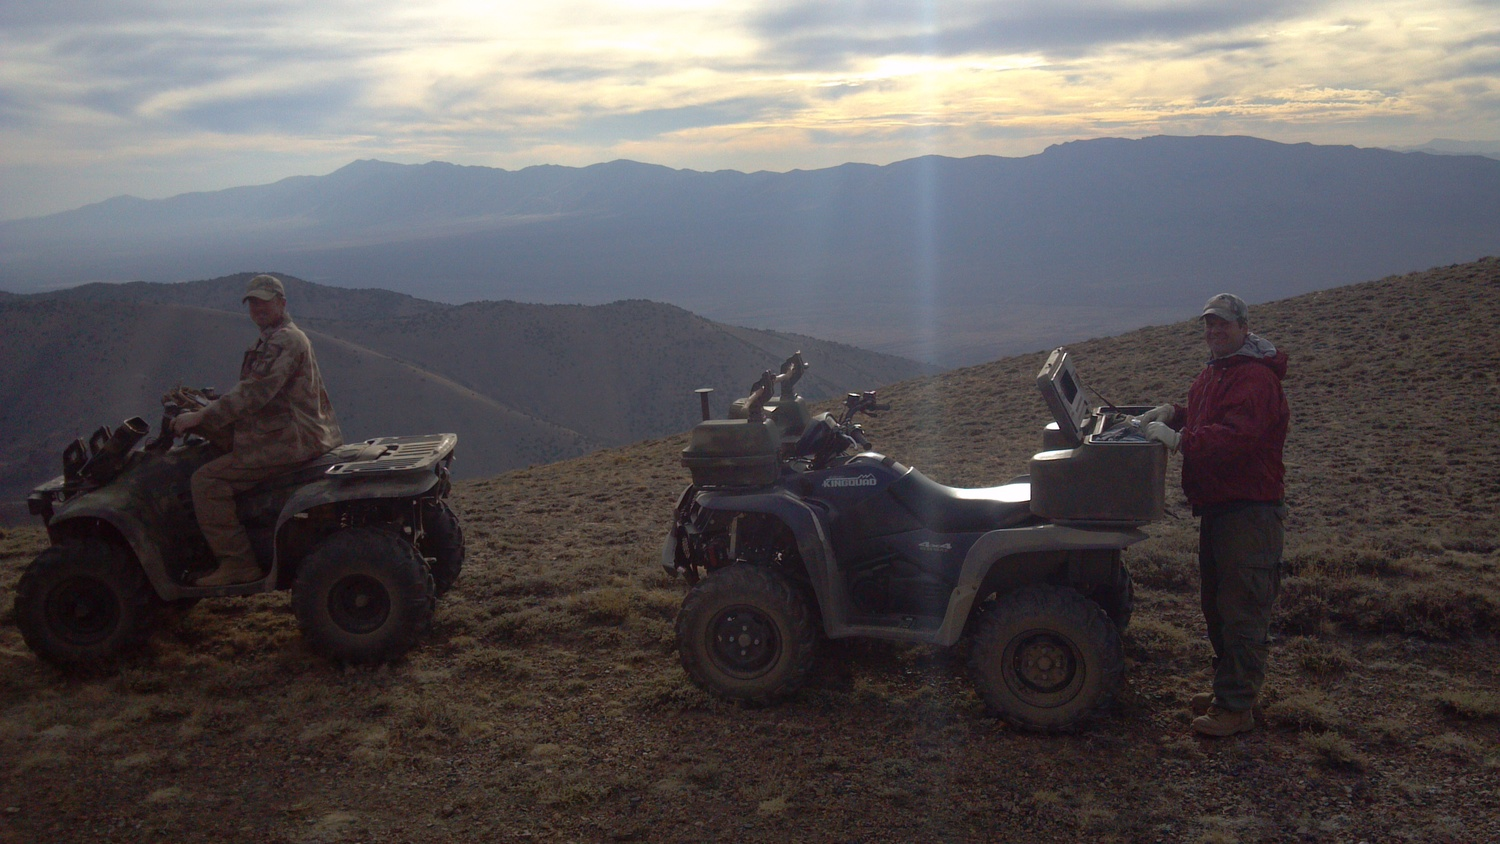 High up on Battle Mountain. Robert Ward on the left, Keith Jenkerson on the right.